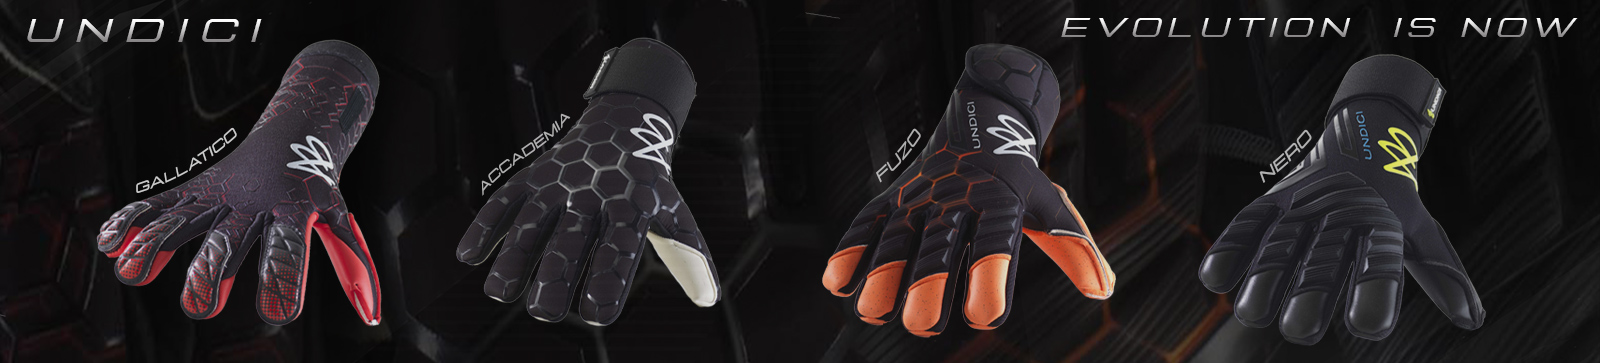 AB1GK Undici Gloves